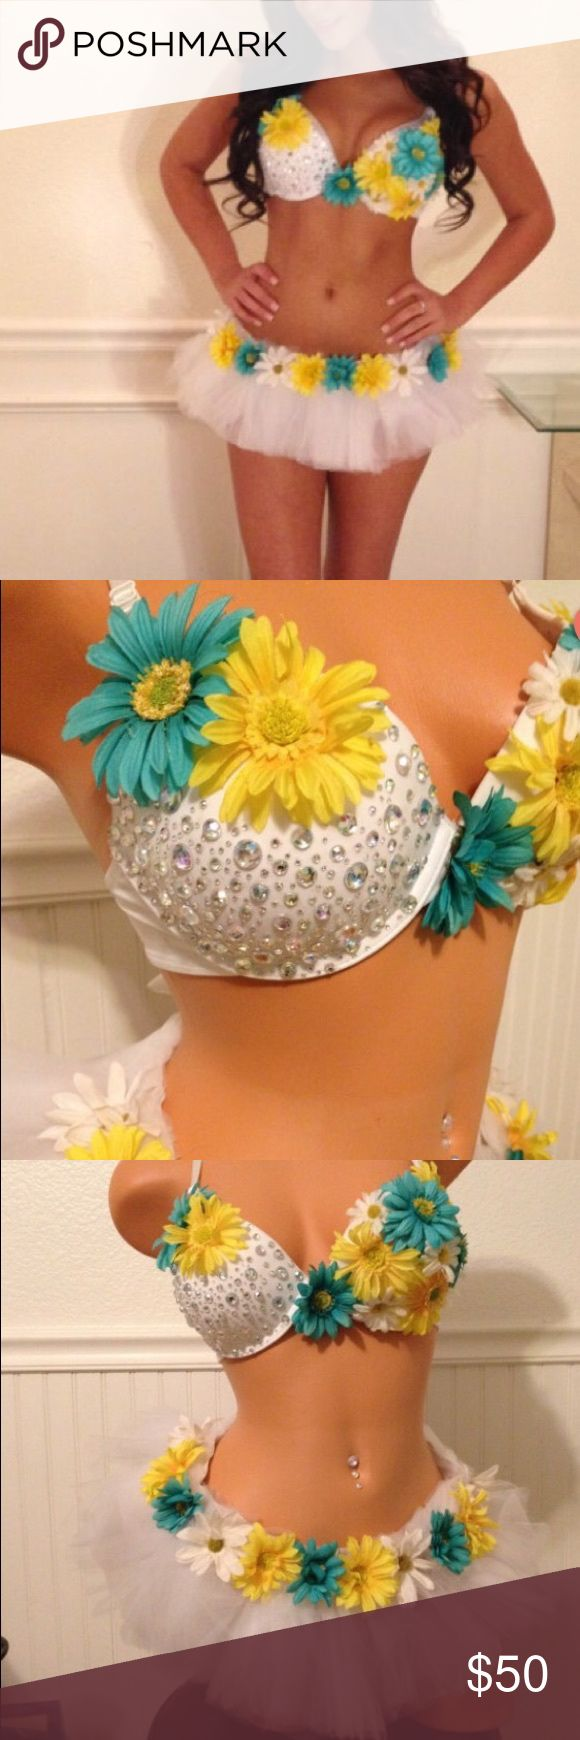 Rave costume Flower rave costume Intimates & Sleepwear Bras